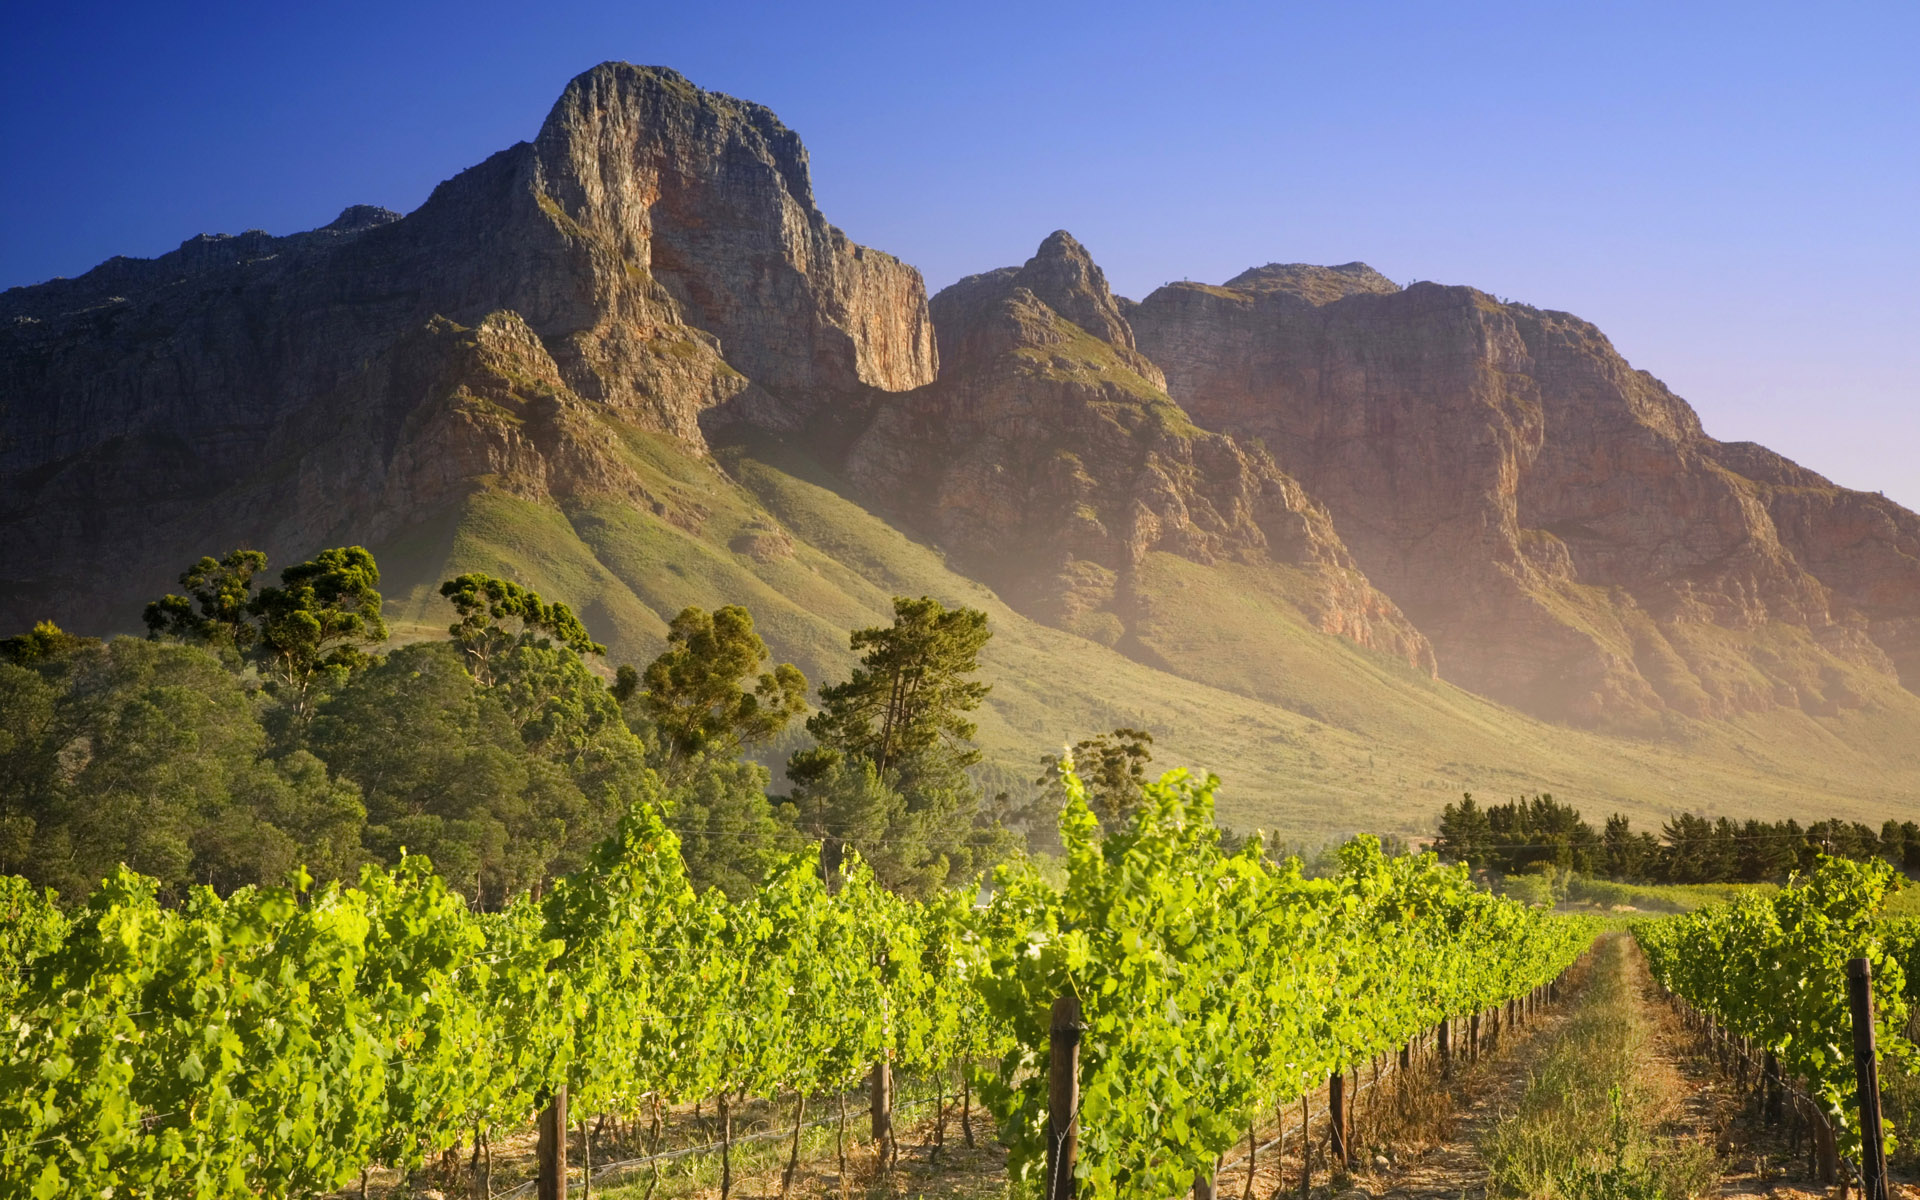 Vineyard in Franschhoek South Africa   Wallpaper 434 1920x1200